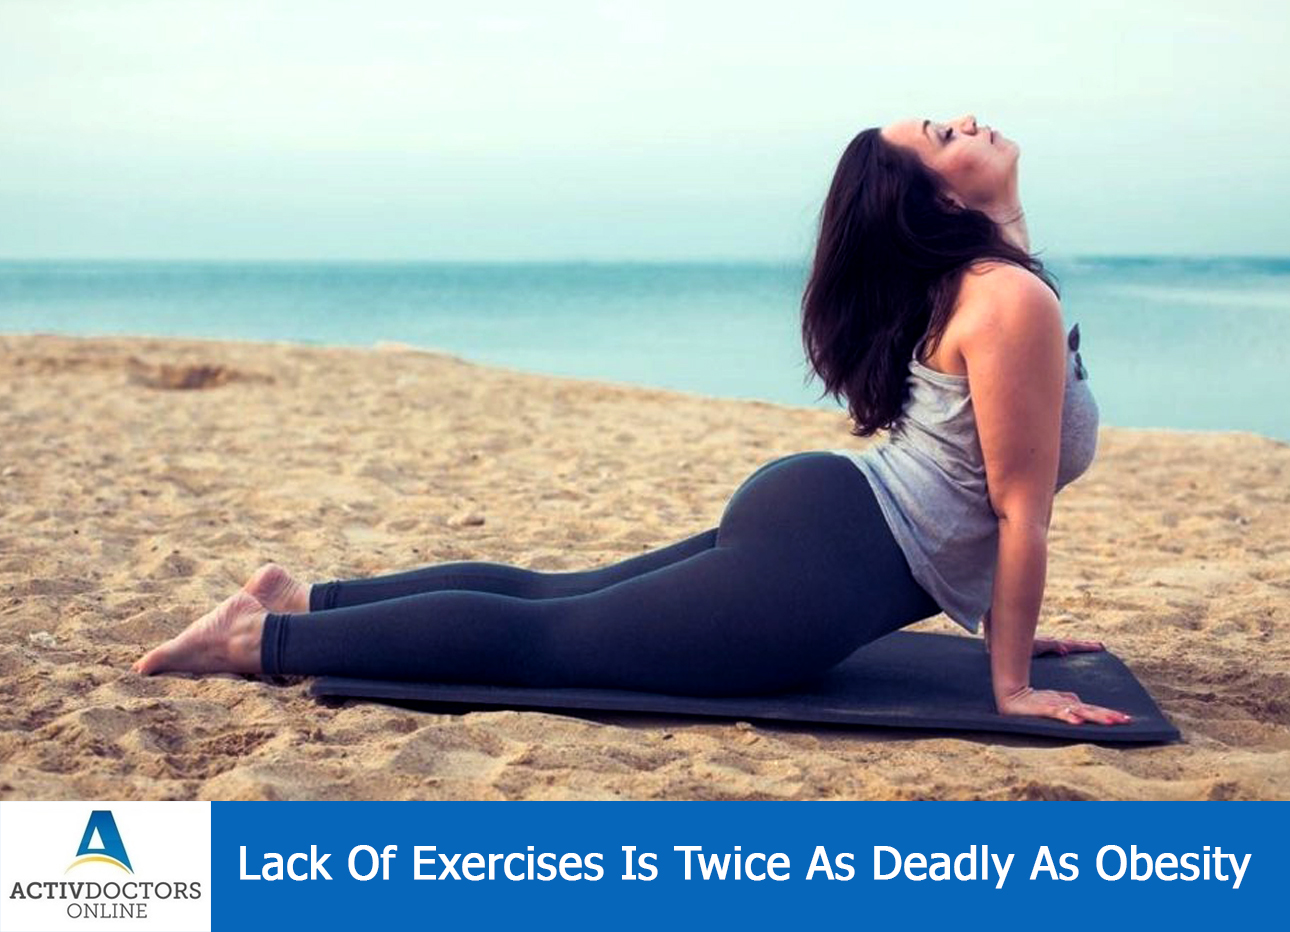 Lack Of Exercises Is Twice As Deadly As Obesity